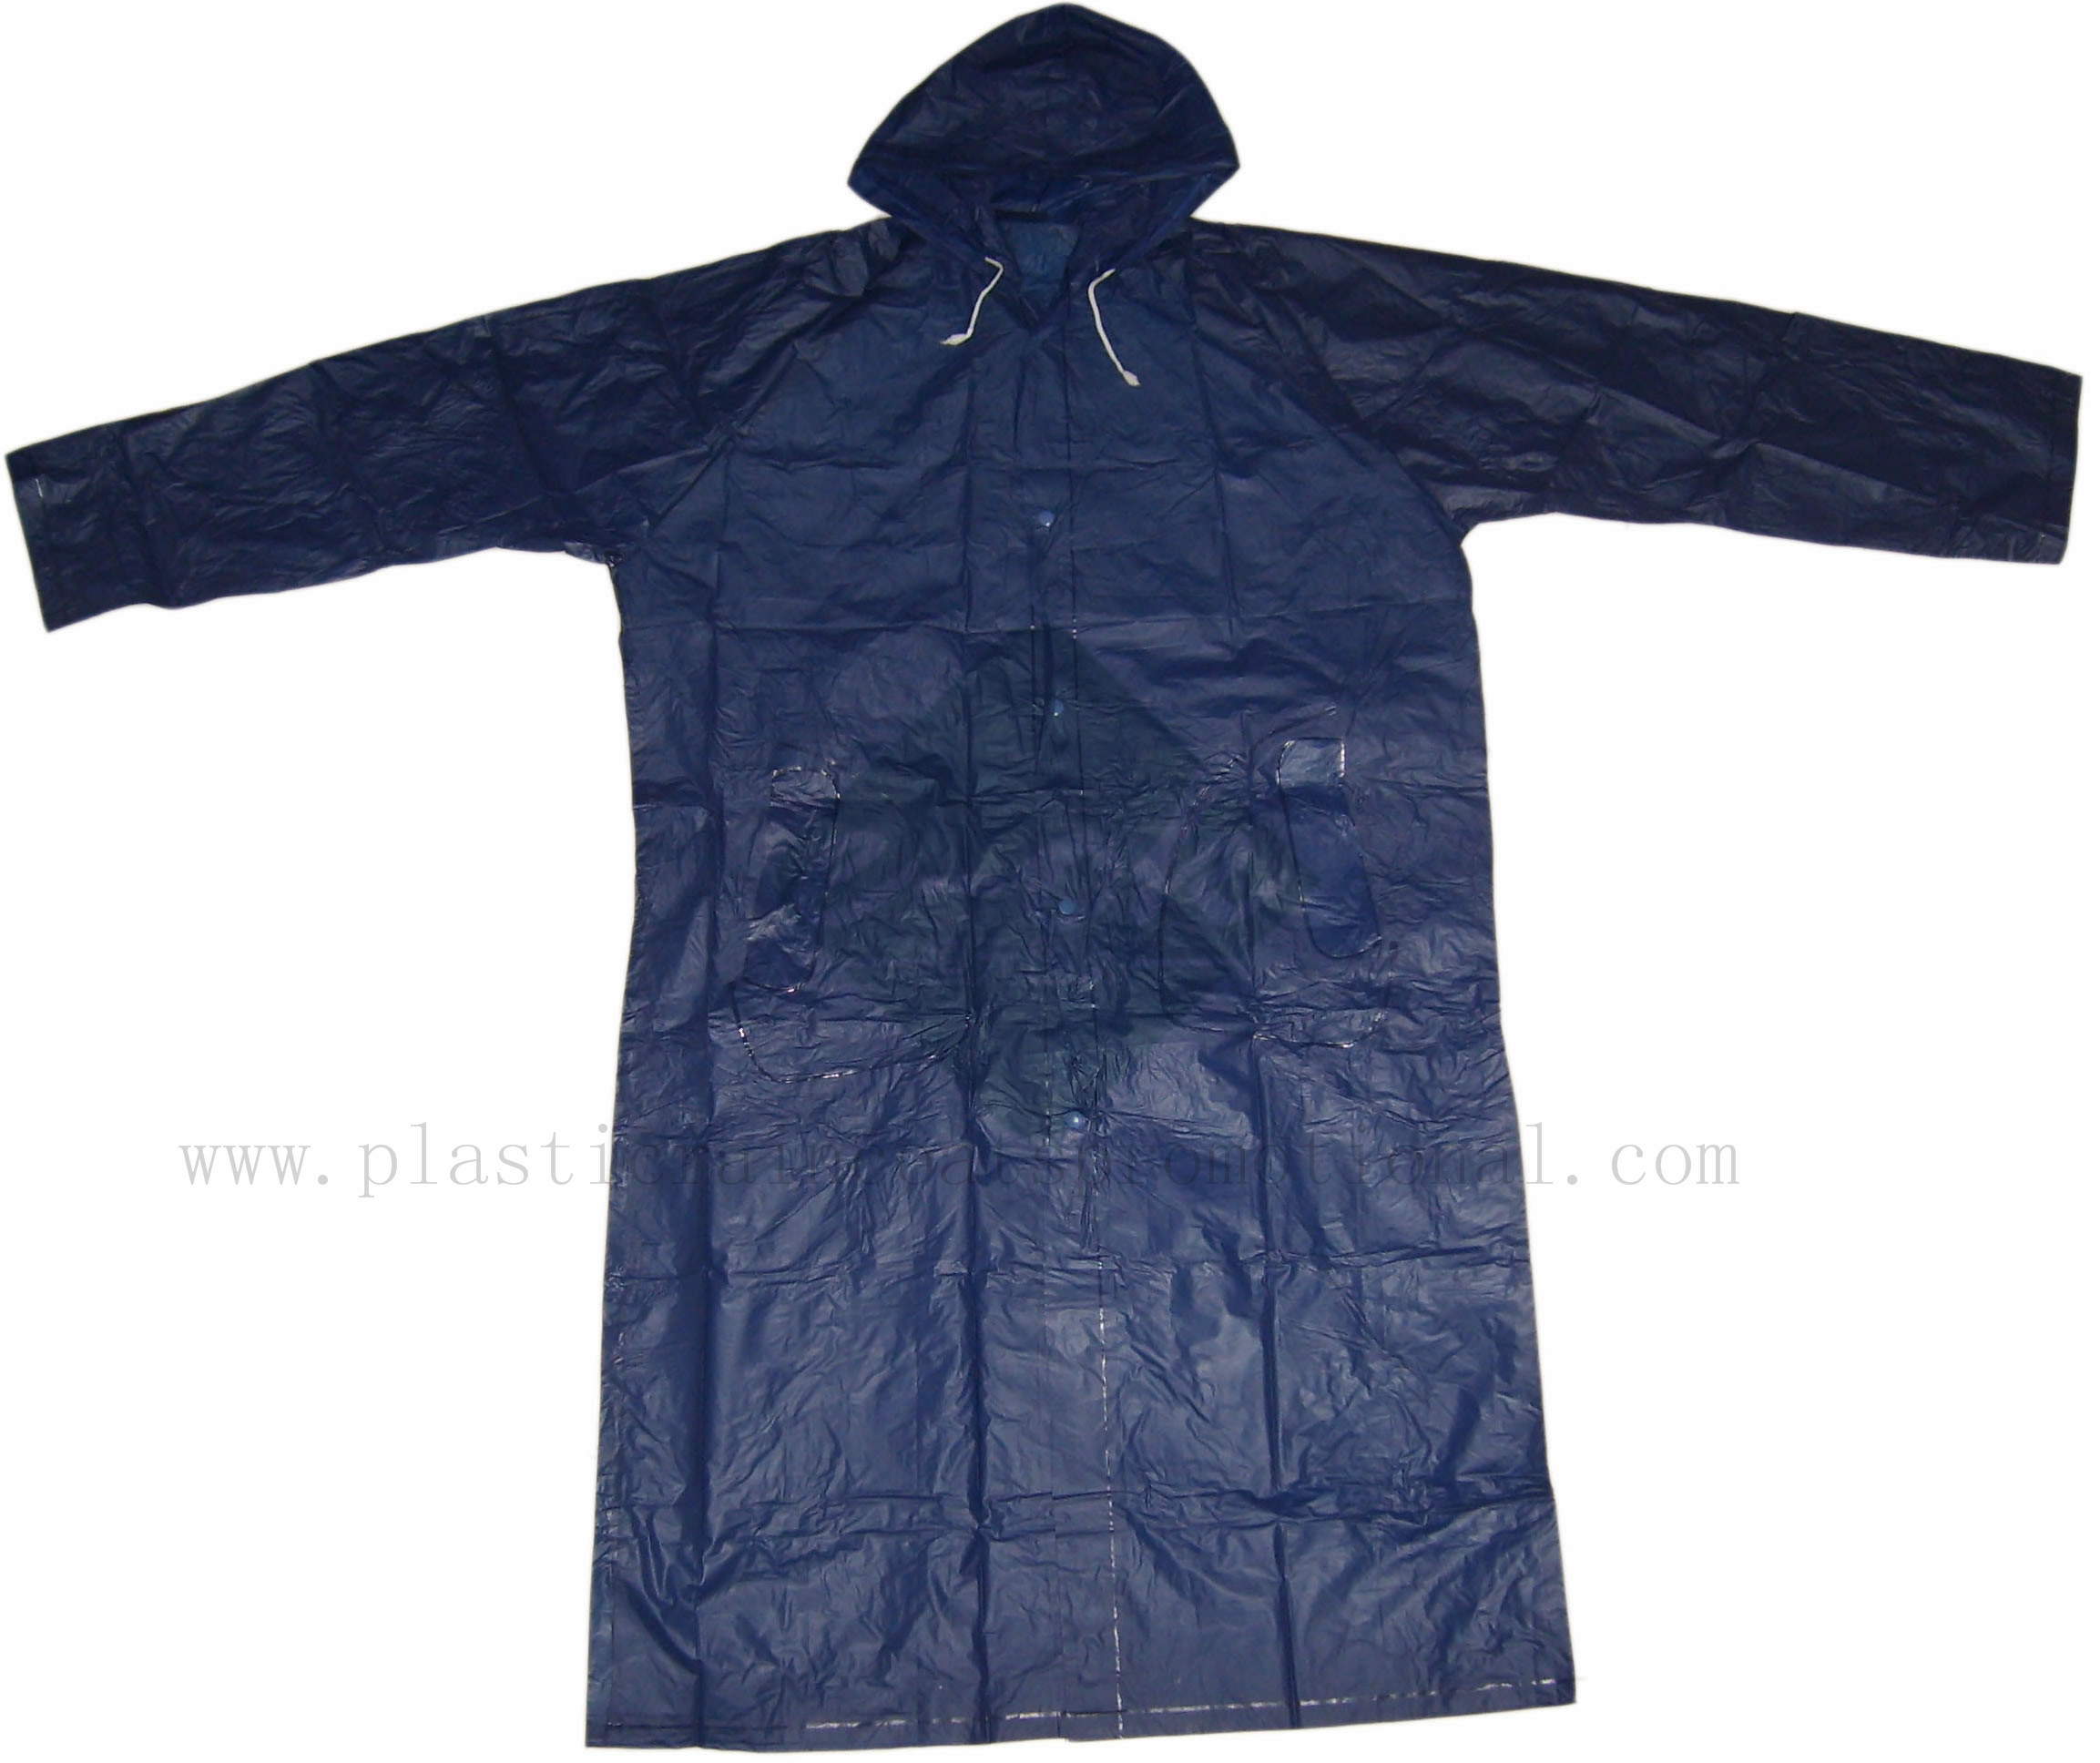 PVC Promotional raincoats-Vinyl plastic Raincoats